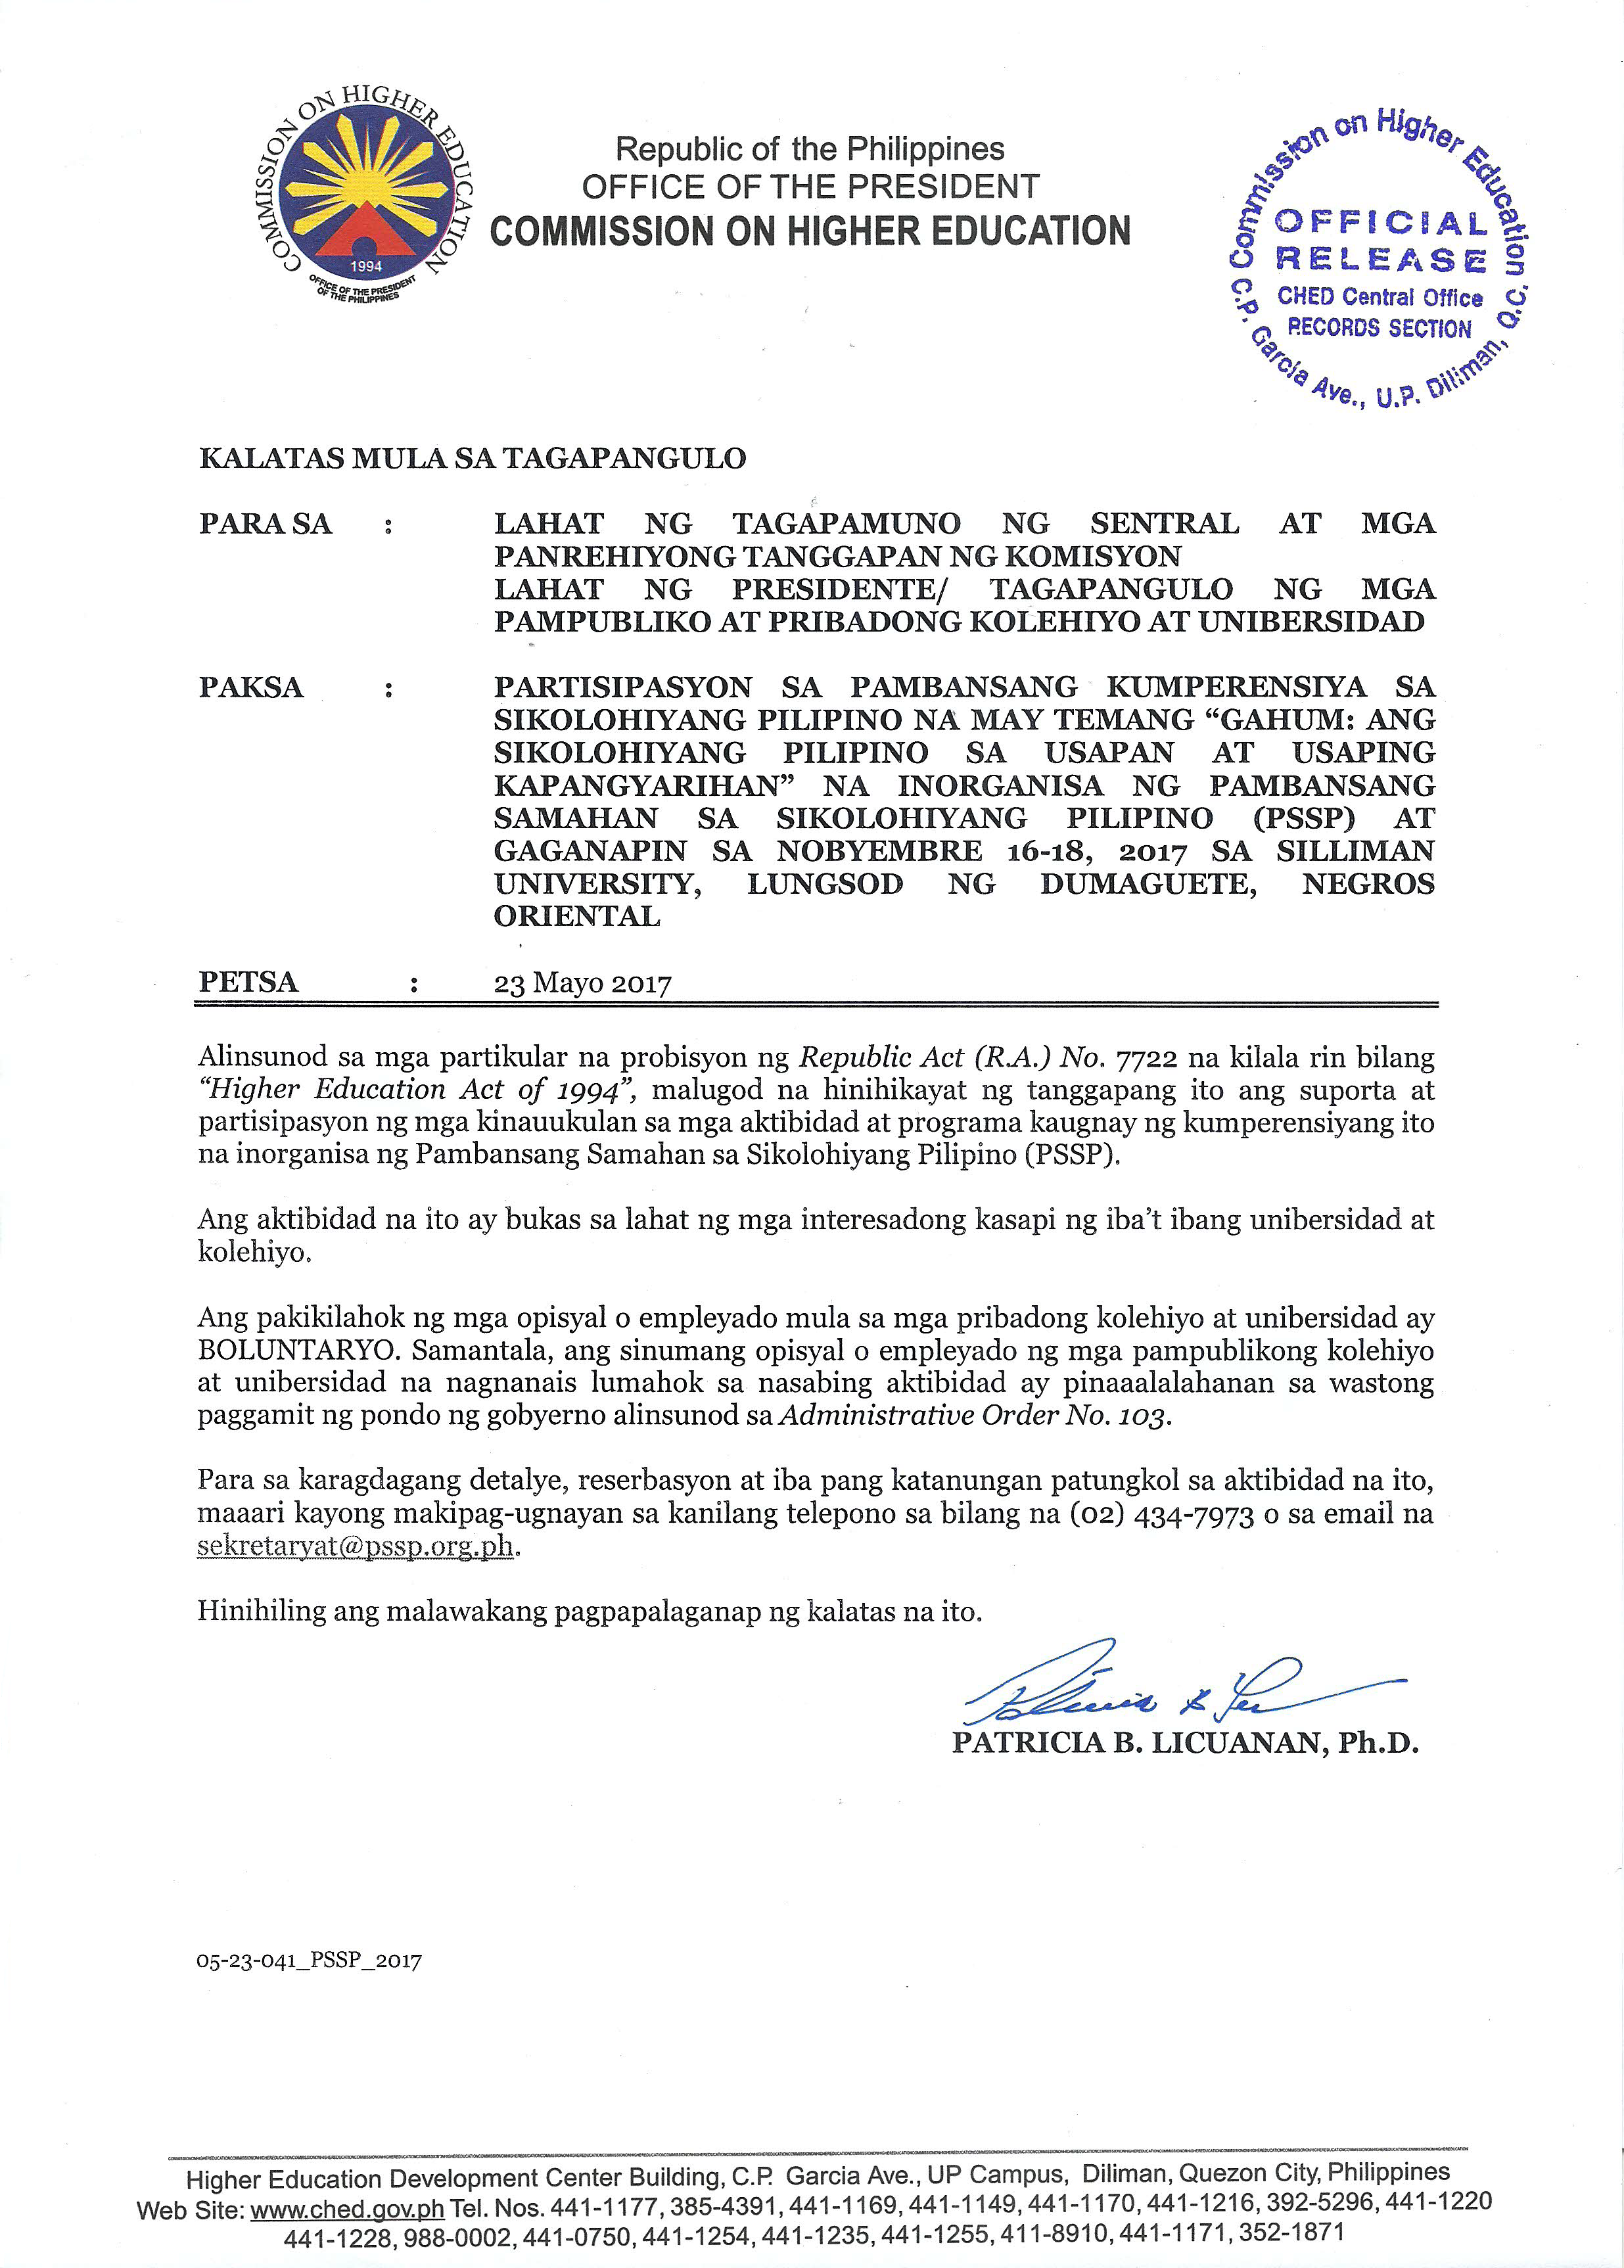 CHED Memo